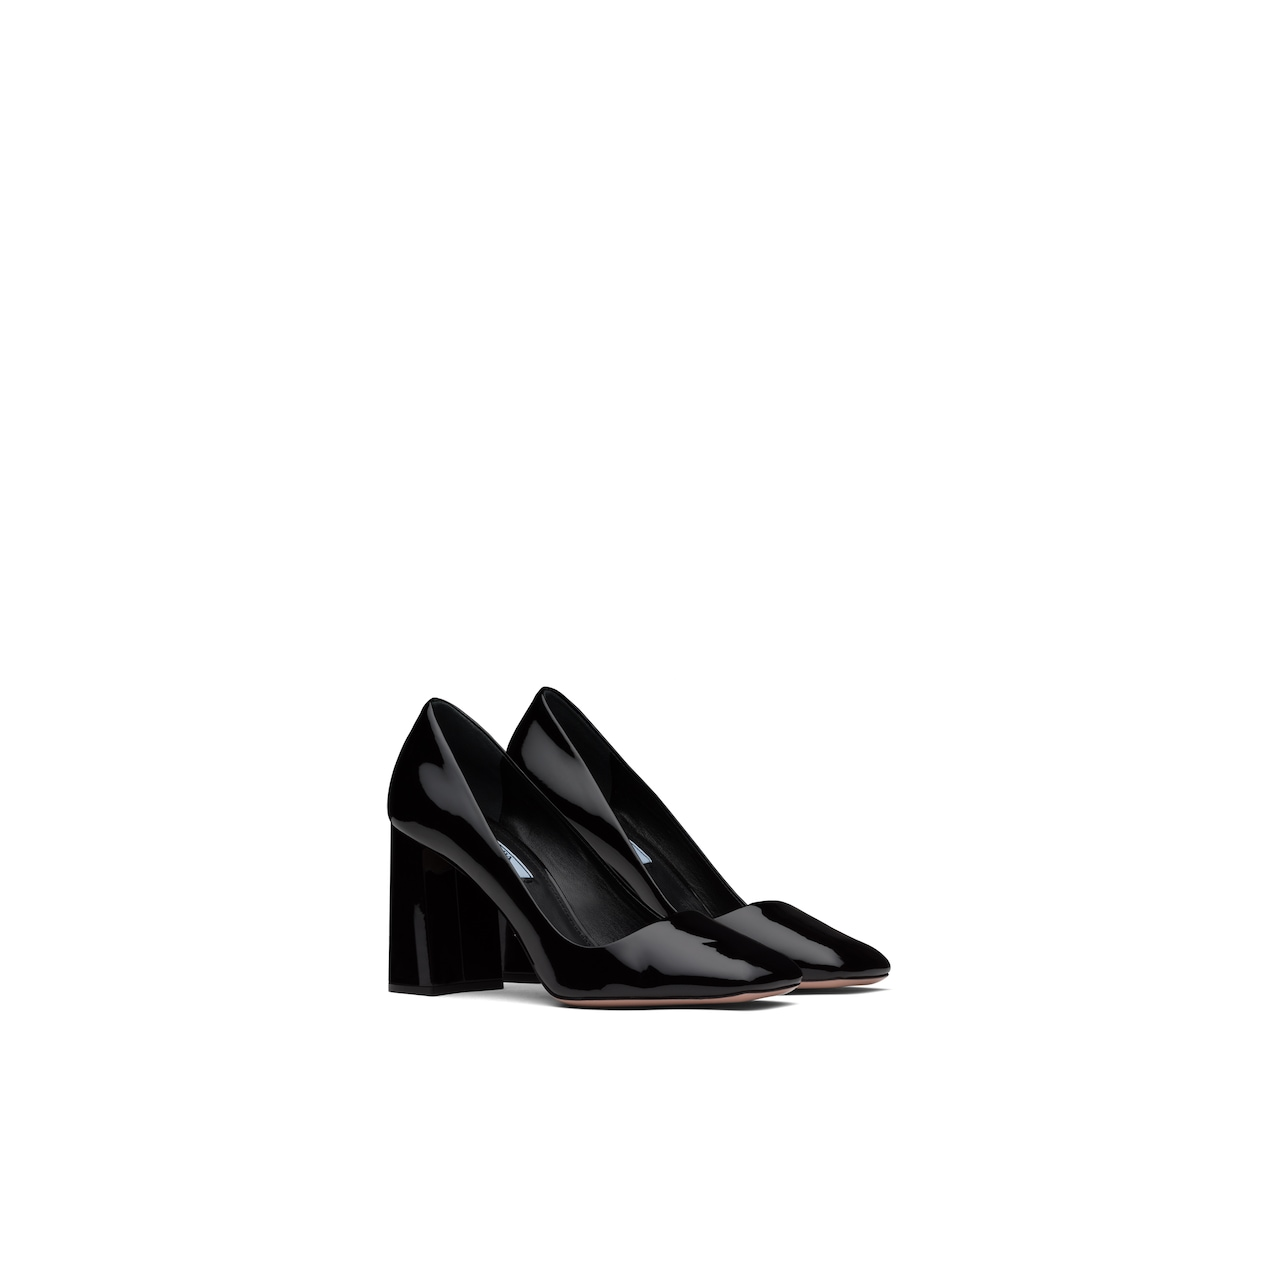 Prada Patent leather pumps 1